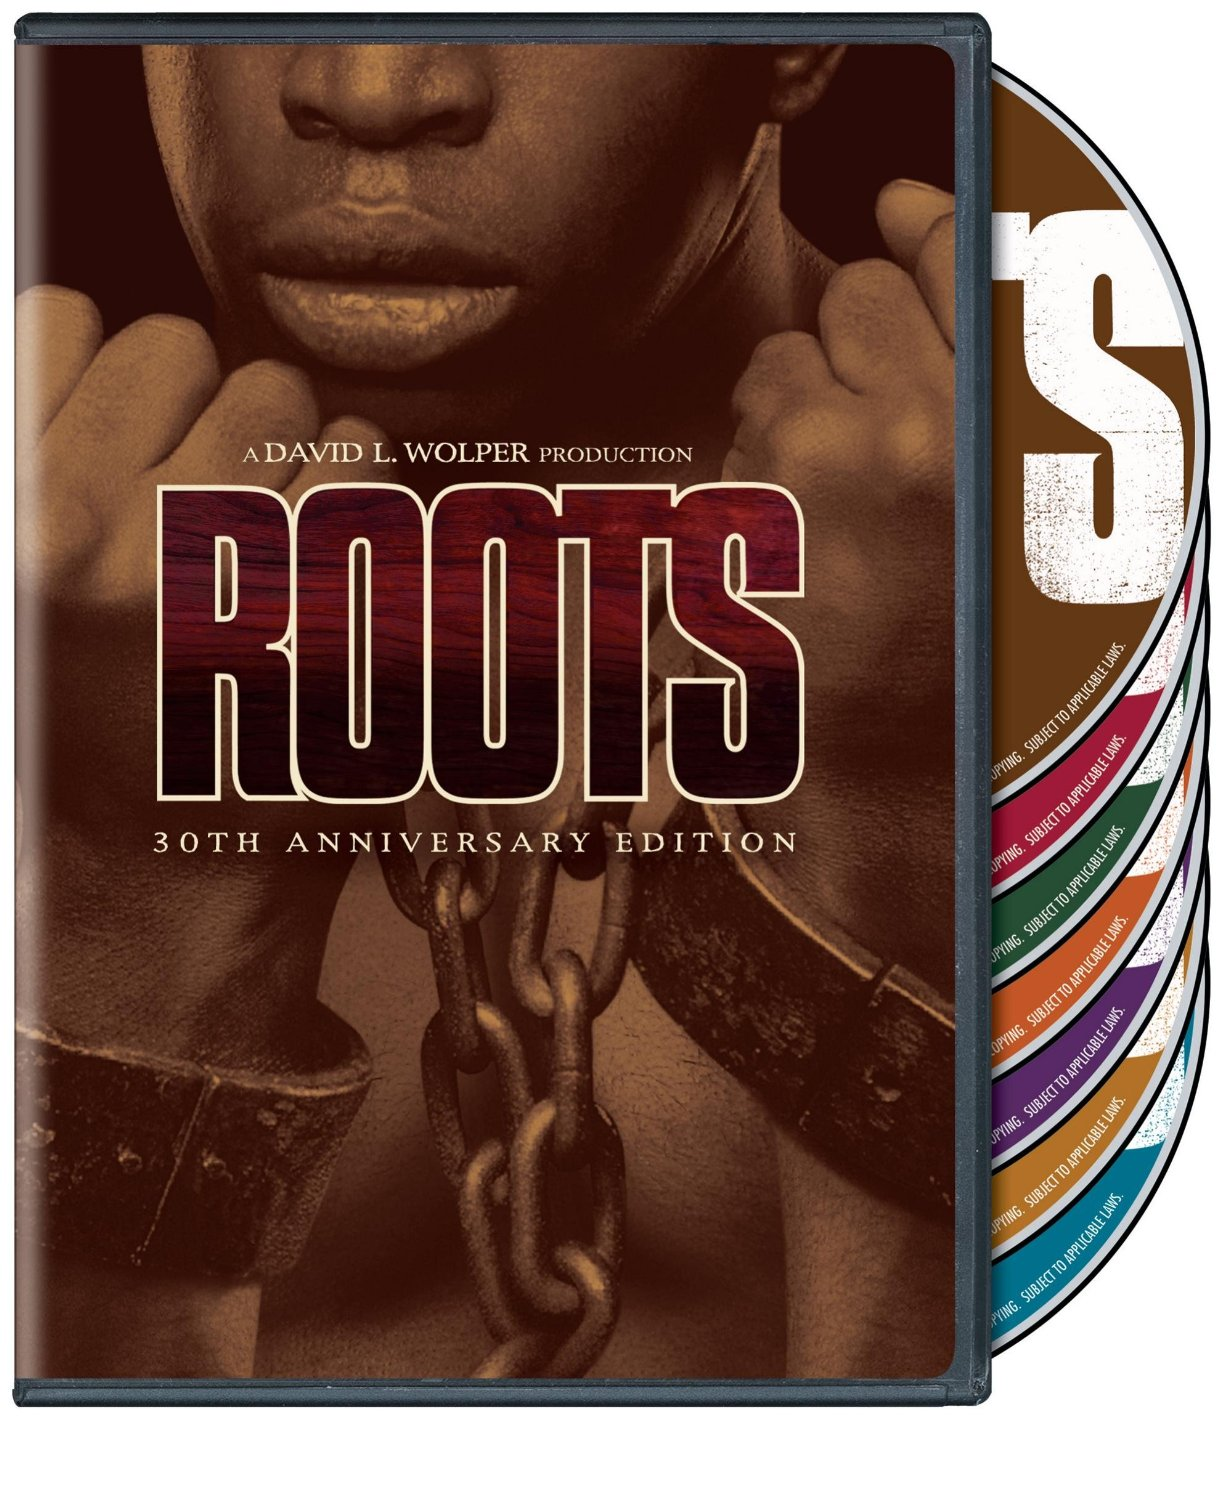 Roots (1977 miniseries)